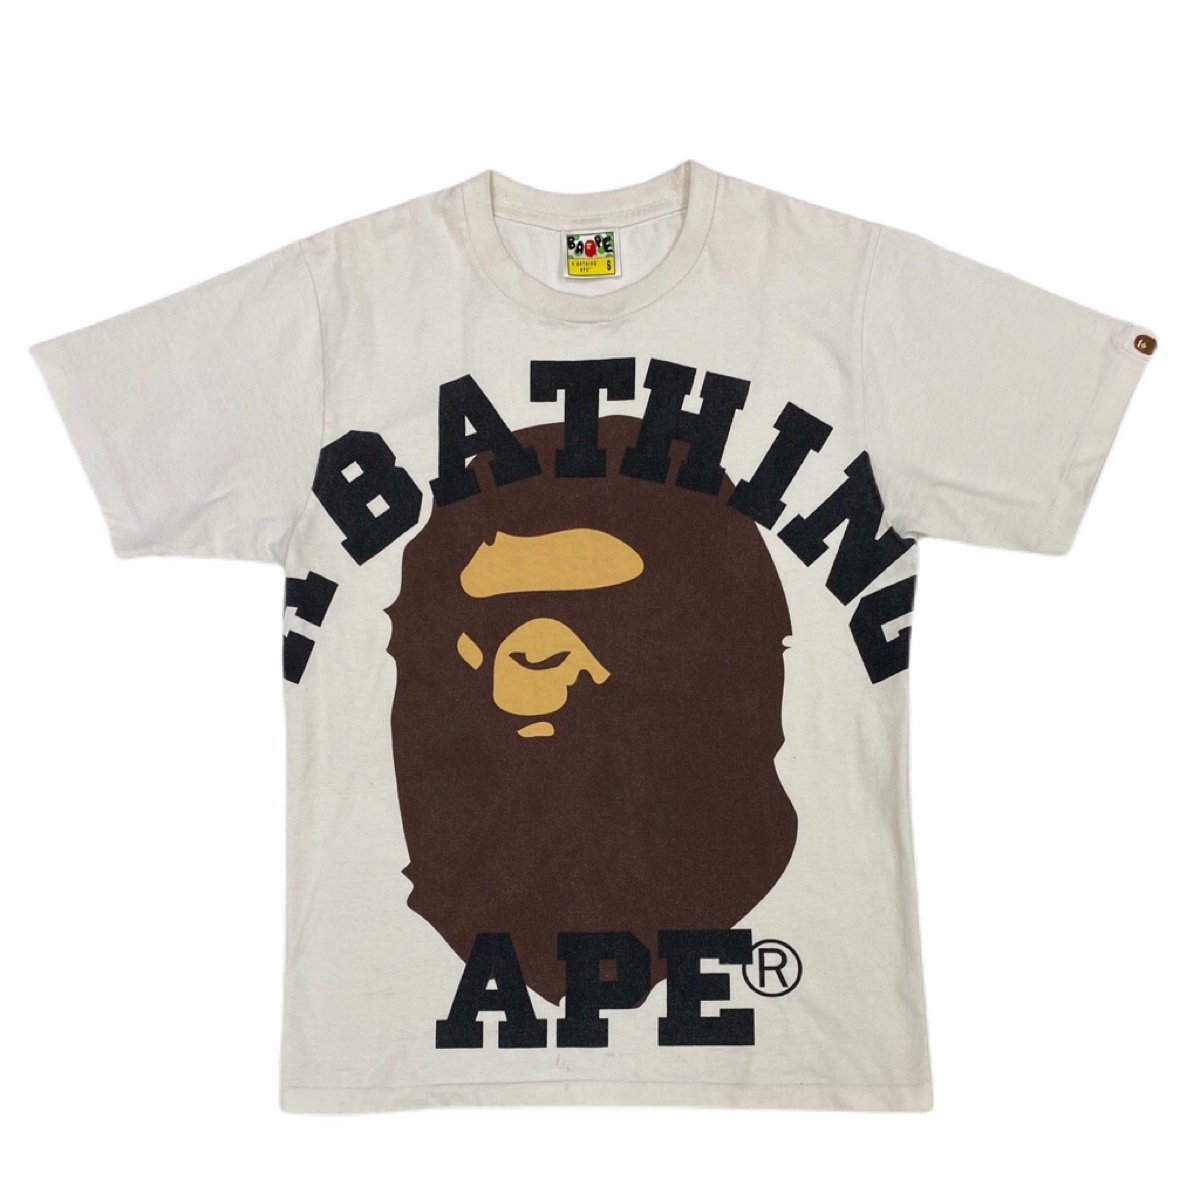 Bape big ape white tee